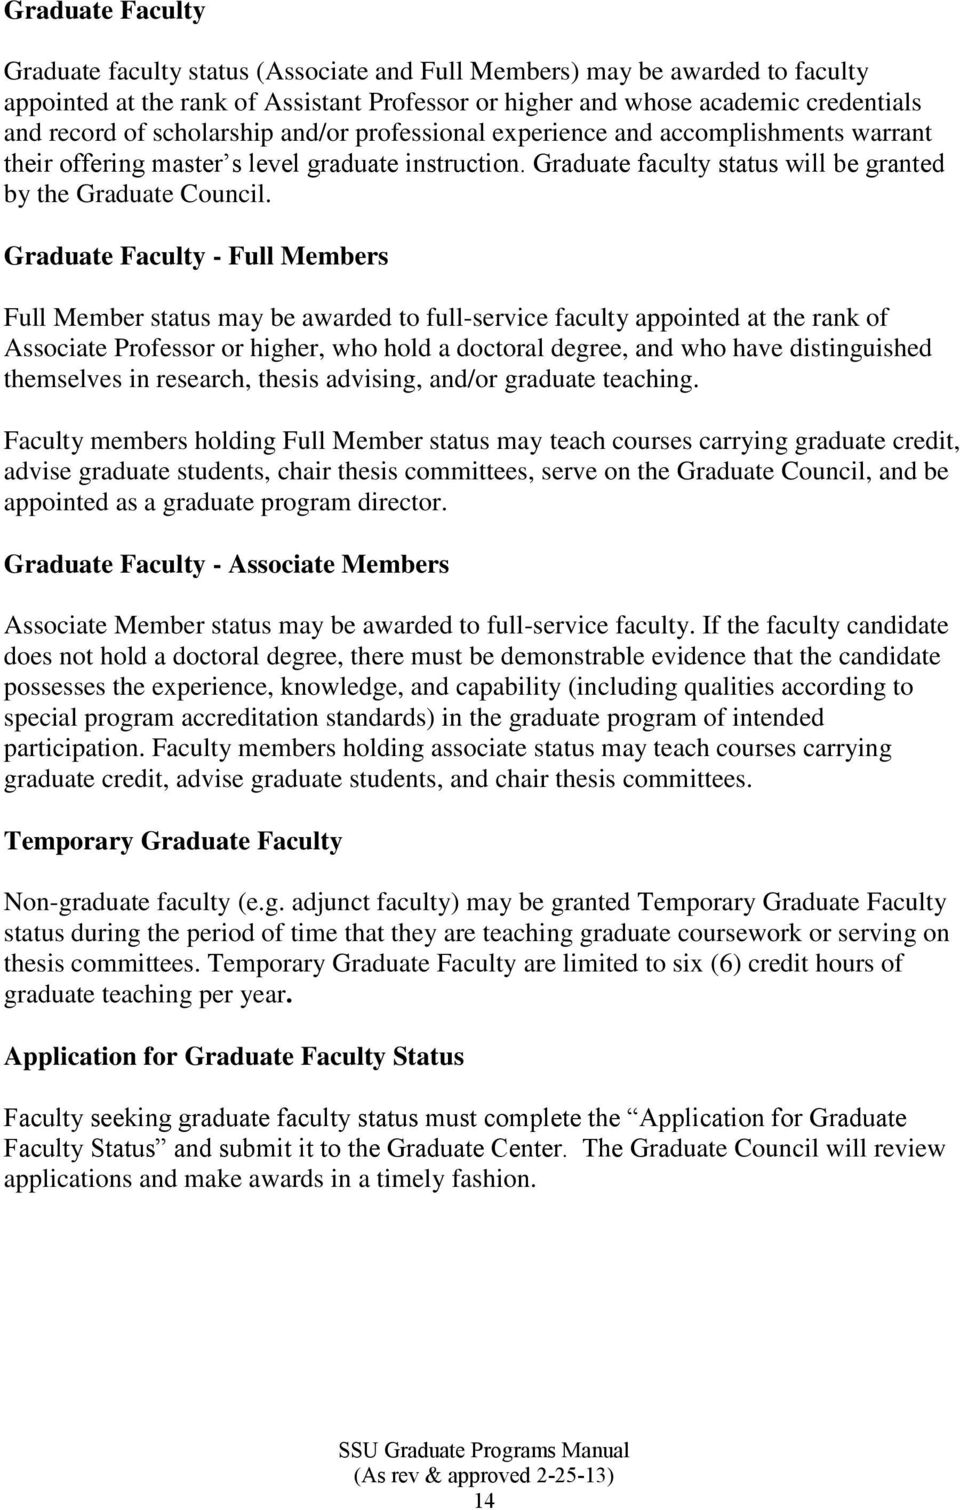 Graduate Faculty - Full Members Full Member status may be awarded to full-service faculty appointed at the rank of Associate Professor or higher, who hold a doctoral degree, and who have